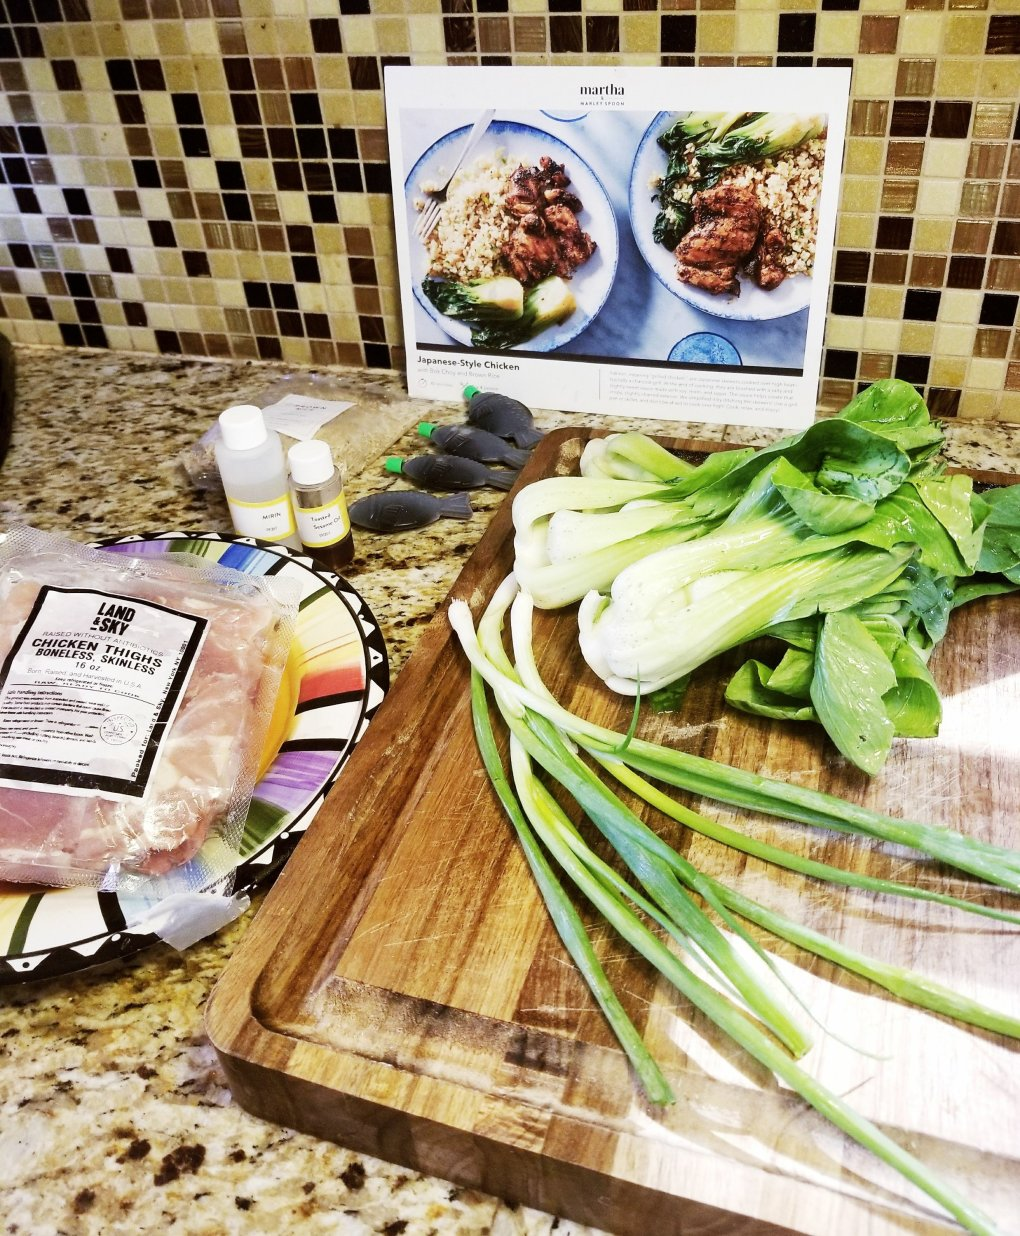 Ingredients for Marley Spoon Japanese Style Chicken w/ Boy Choy and Brown Rice